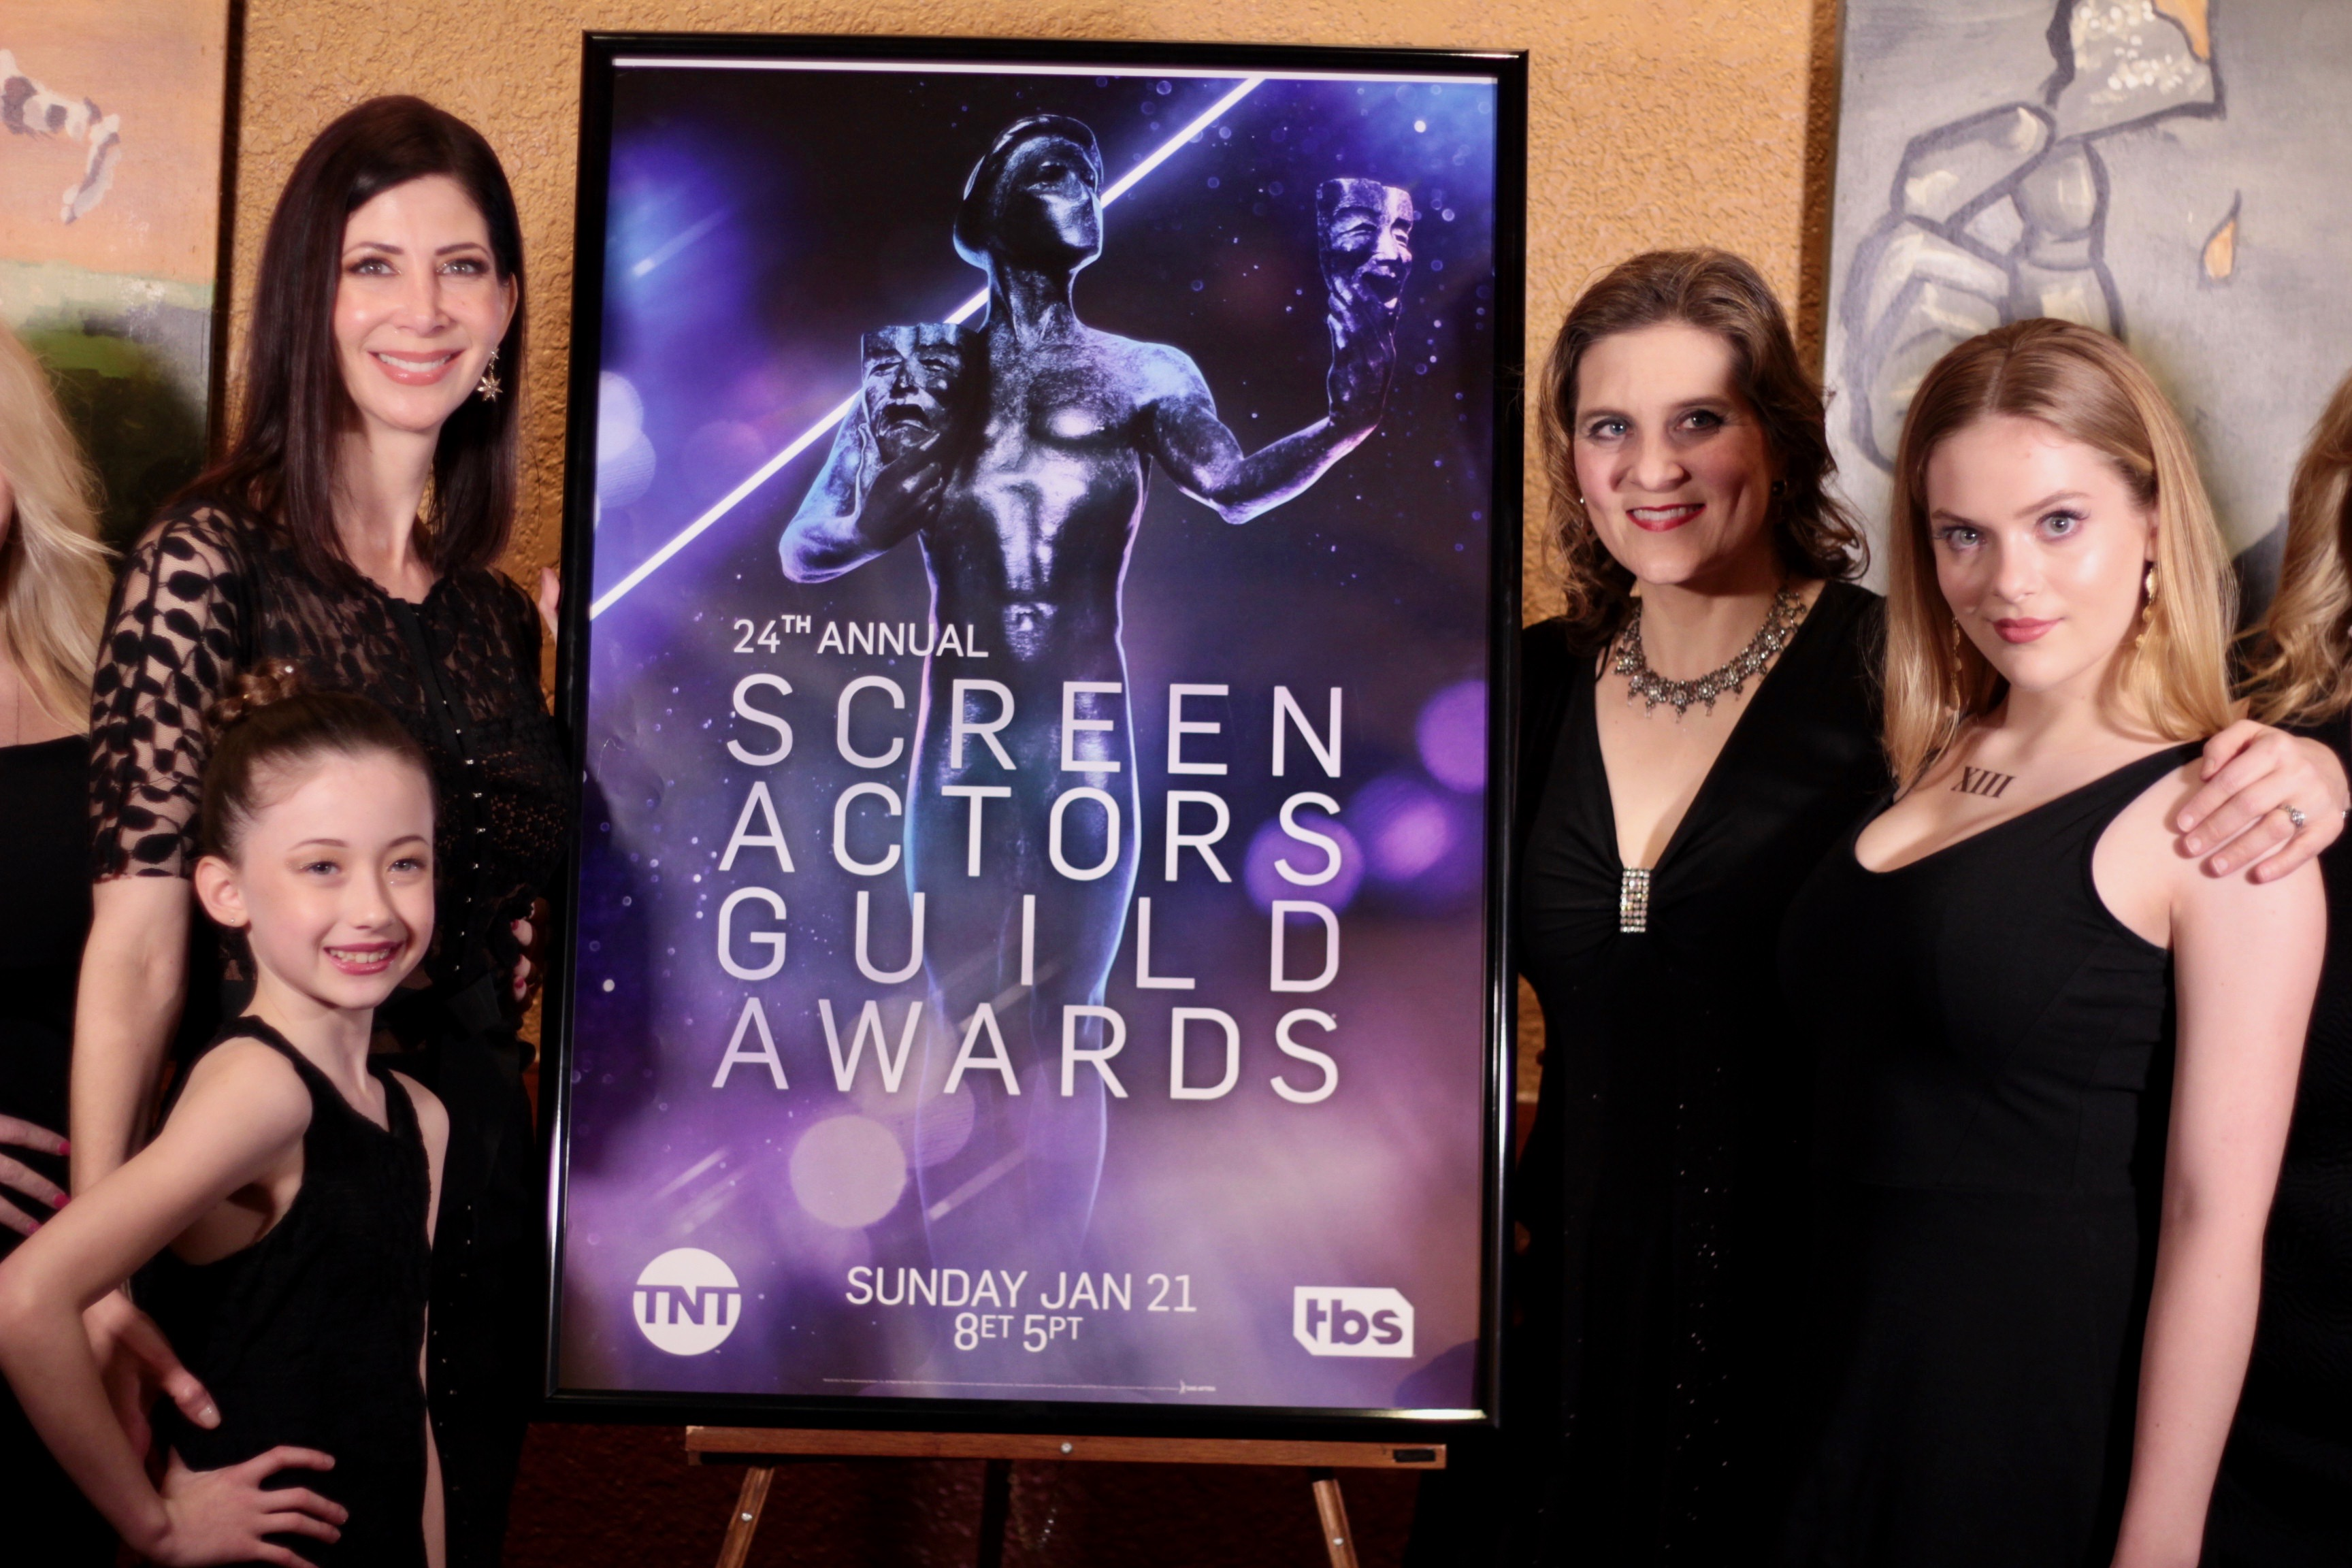 Members at the SAG Awards viewing party near Houston